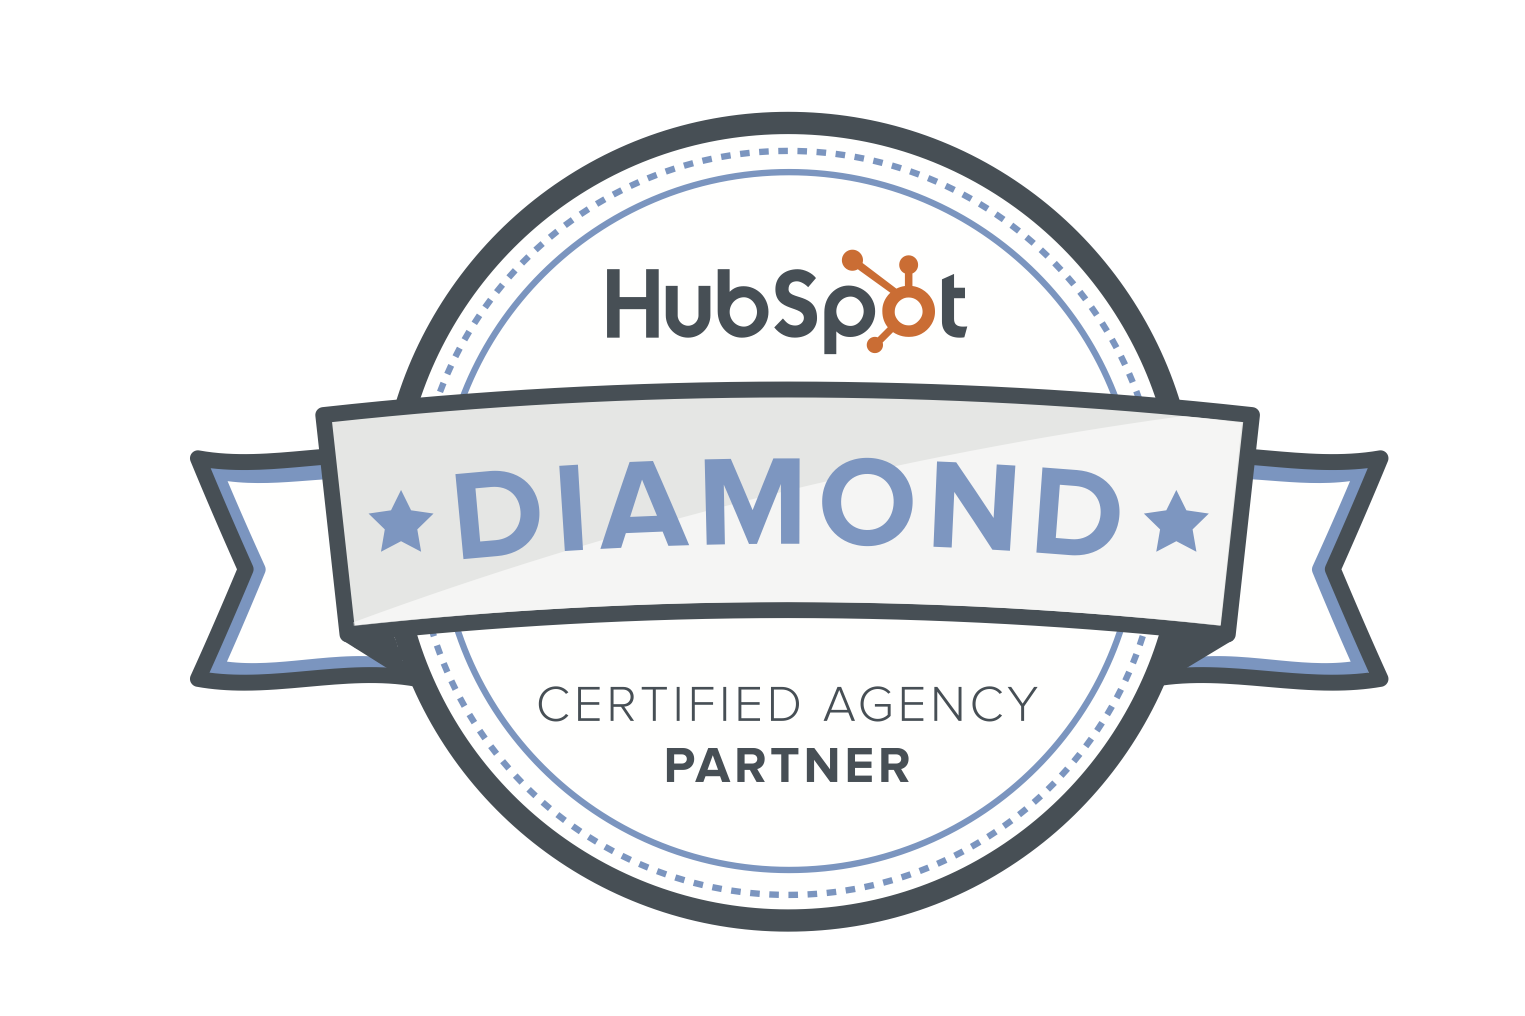 InboundCycle Reaches Diamond Status in the HubSpot Partner Agency Program